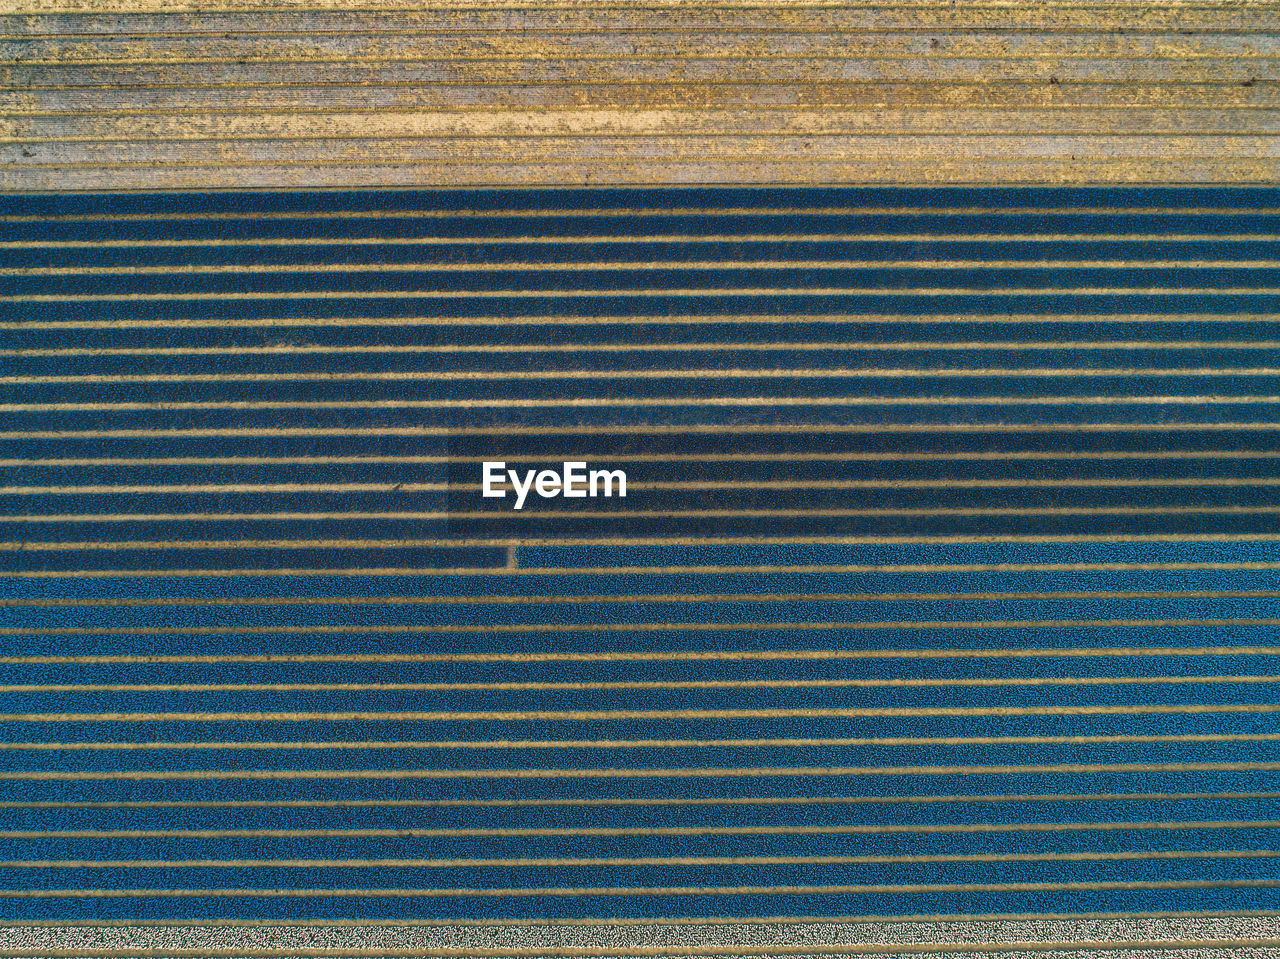 pattern, full frame, no people, backgrounds, striped, day, repetition, textured, outdoors, high angle view, close-up, metal, nature, wall - building feature, architecture, blue, wood - material, yellow, directly above, parallel